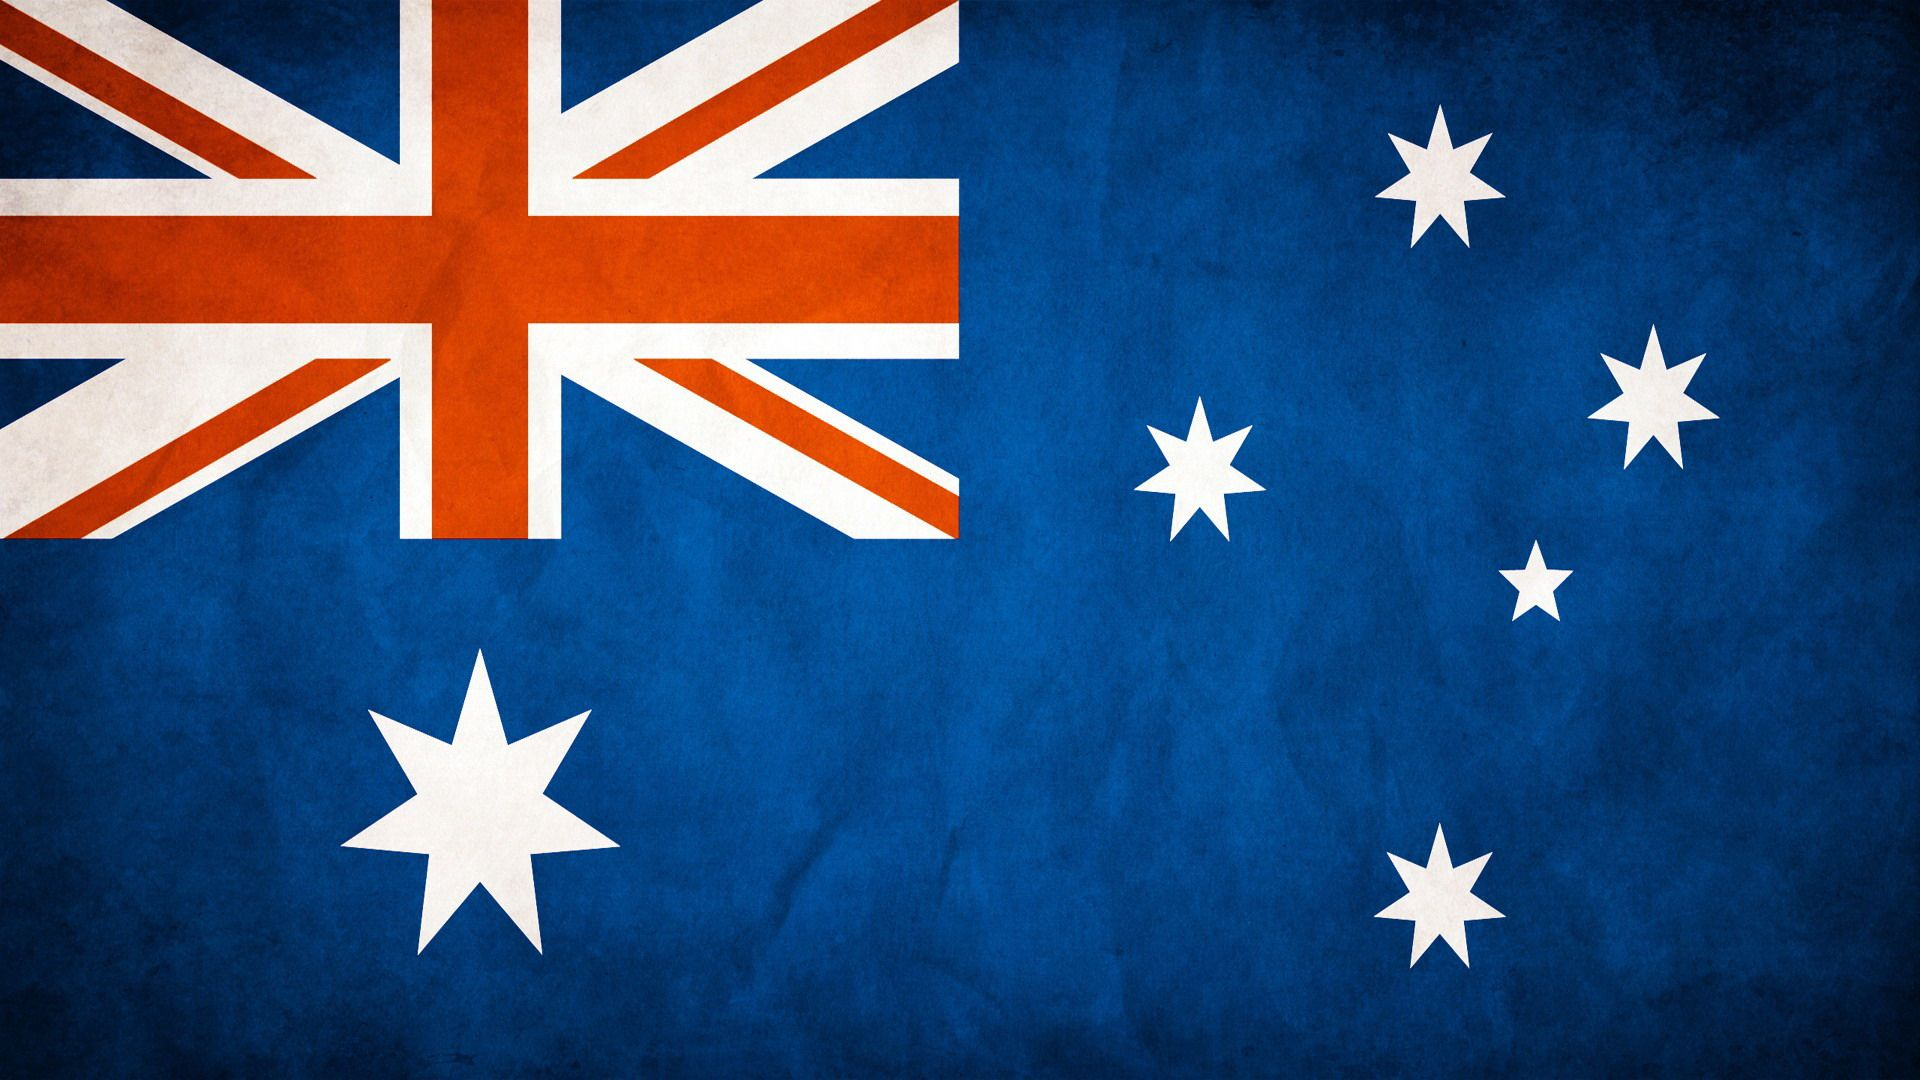 http://media.moddb.com/images/articles/1/131/130169/auto/australian-flag.jpg